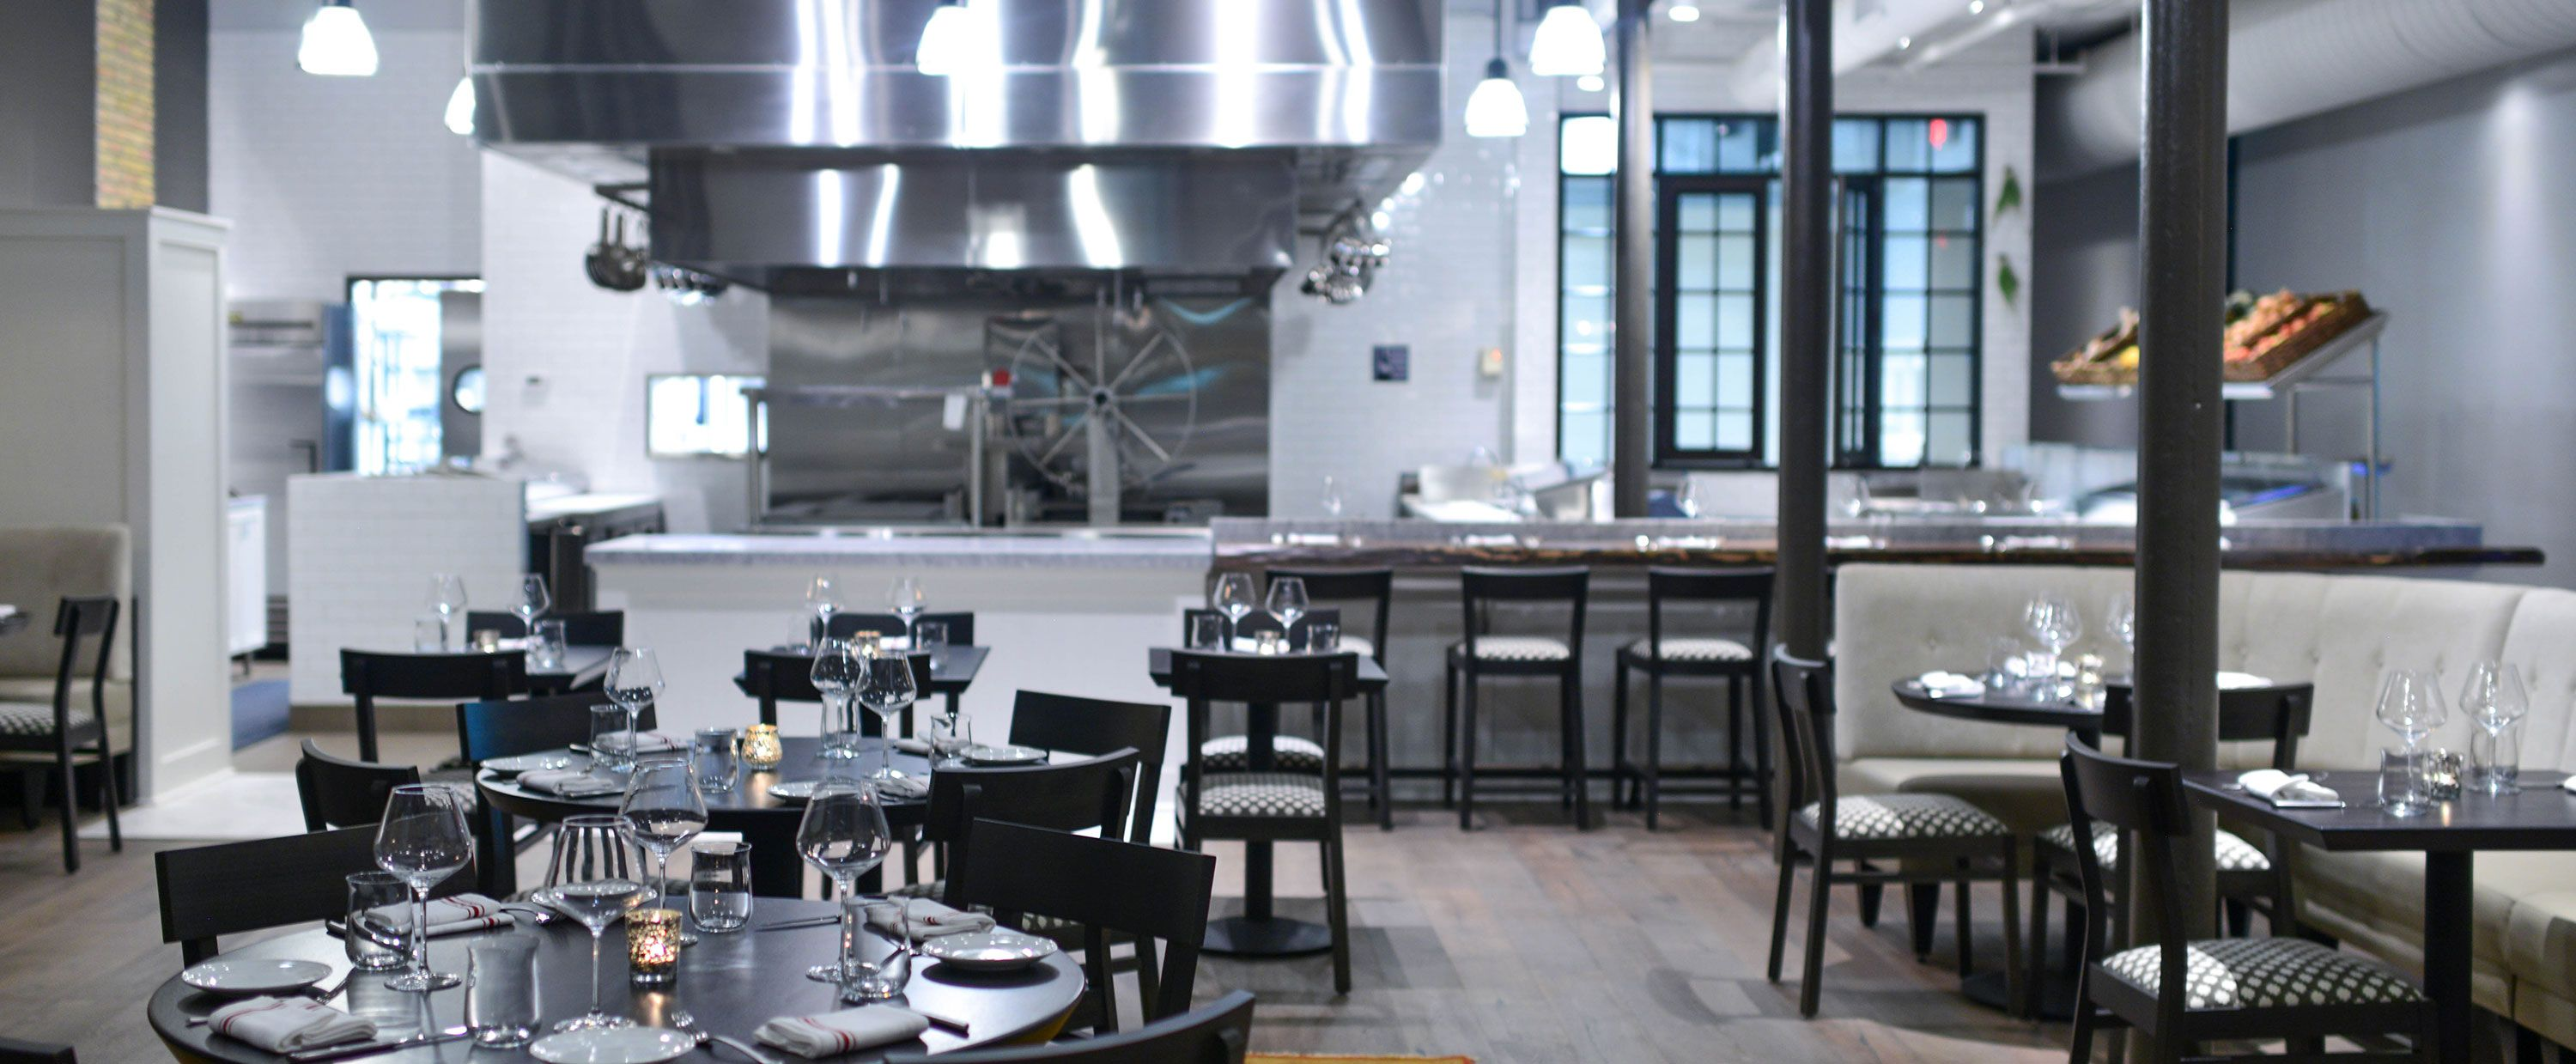 Spoon And Stable Minneapolis Mn Restaurants To Try